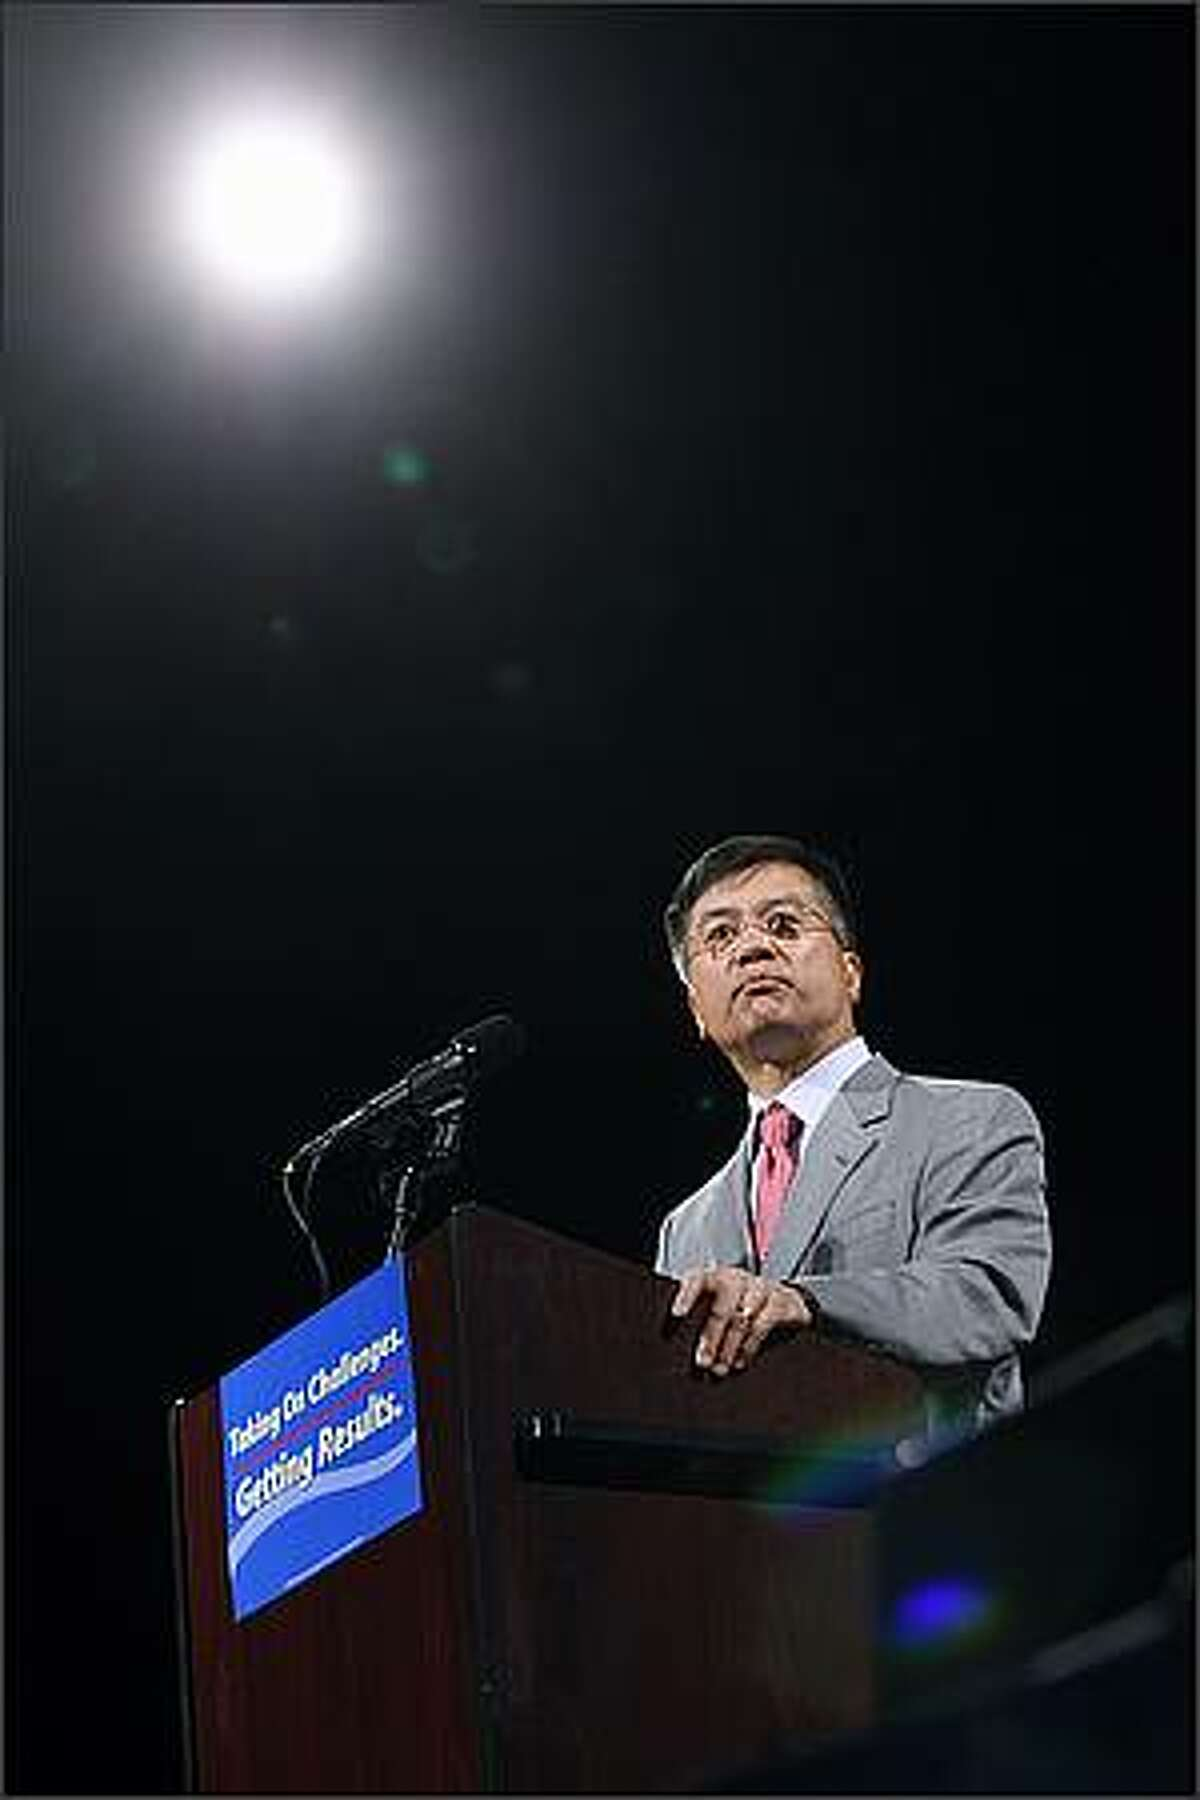 Former Washington governor Gary Locke speaks to the crowd in support of Governor Chris Gregoire.